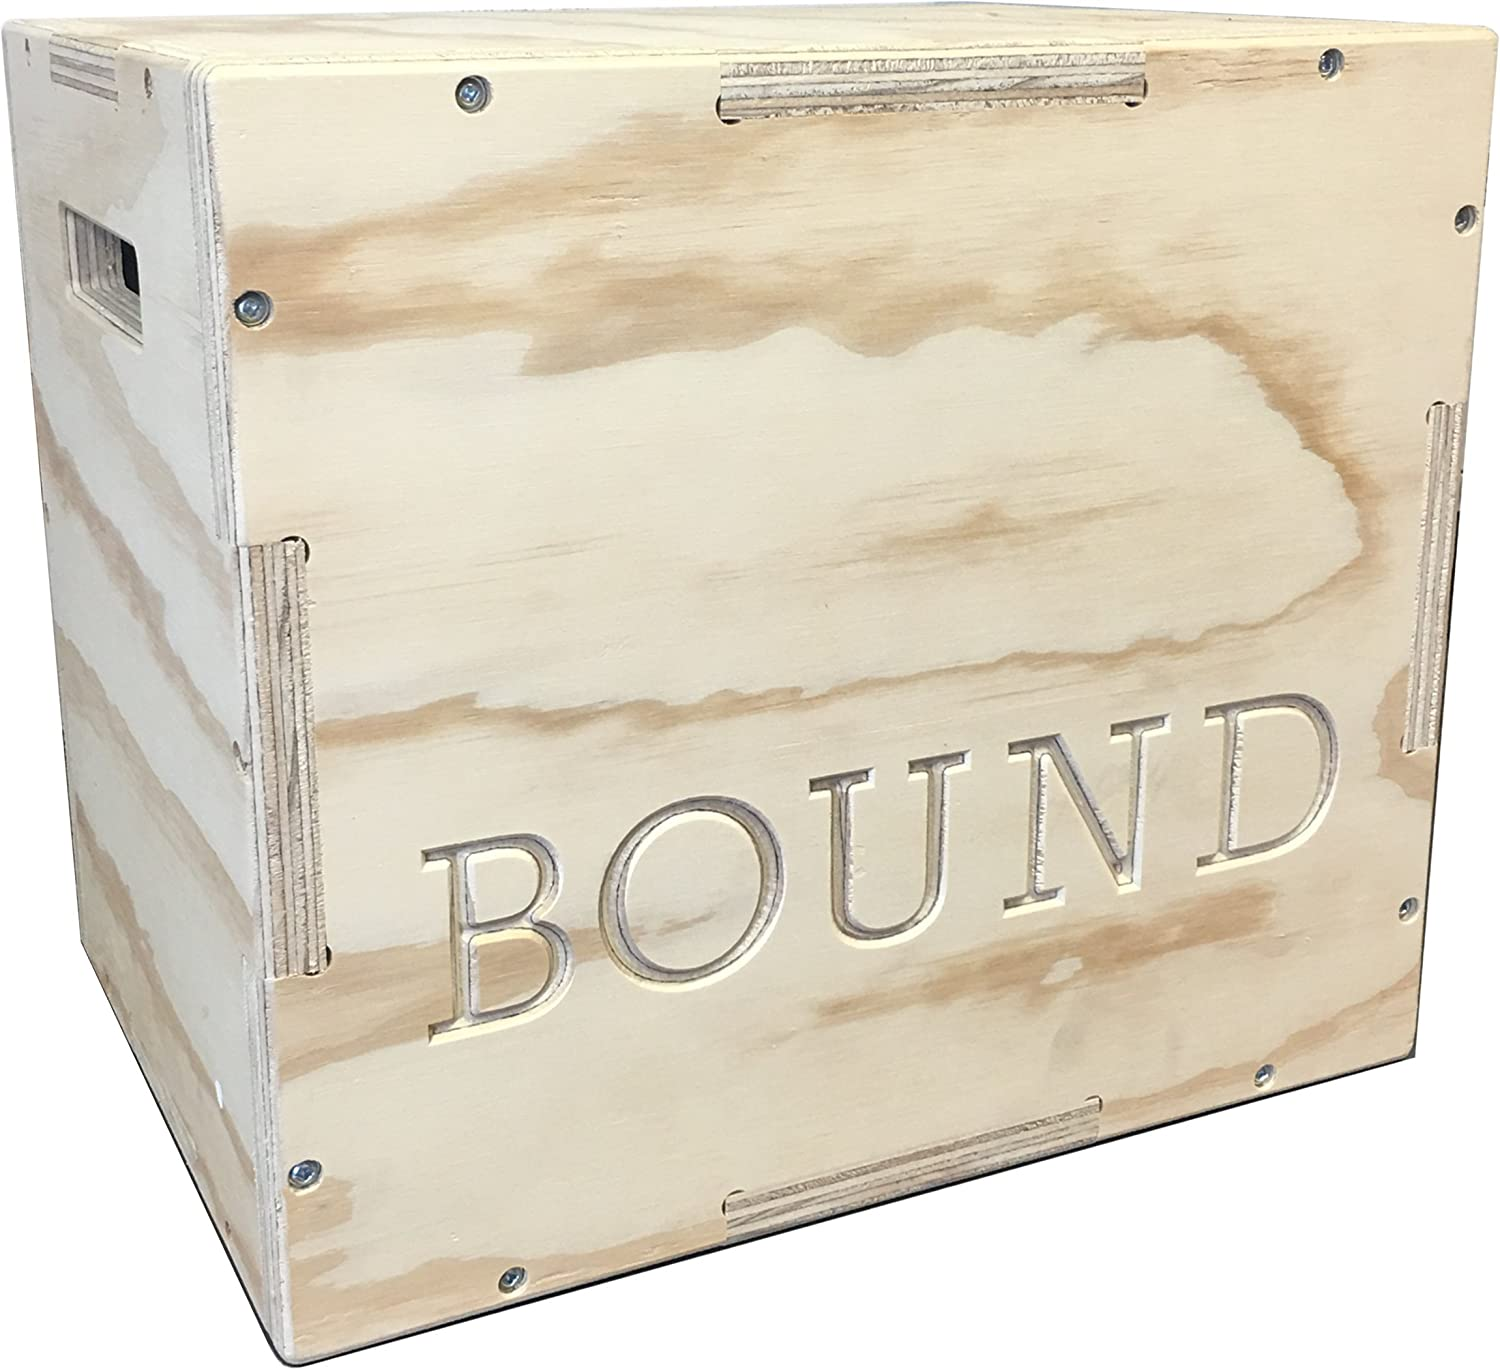 Bound Plyo Box 3-in-1 Wood Puzzle